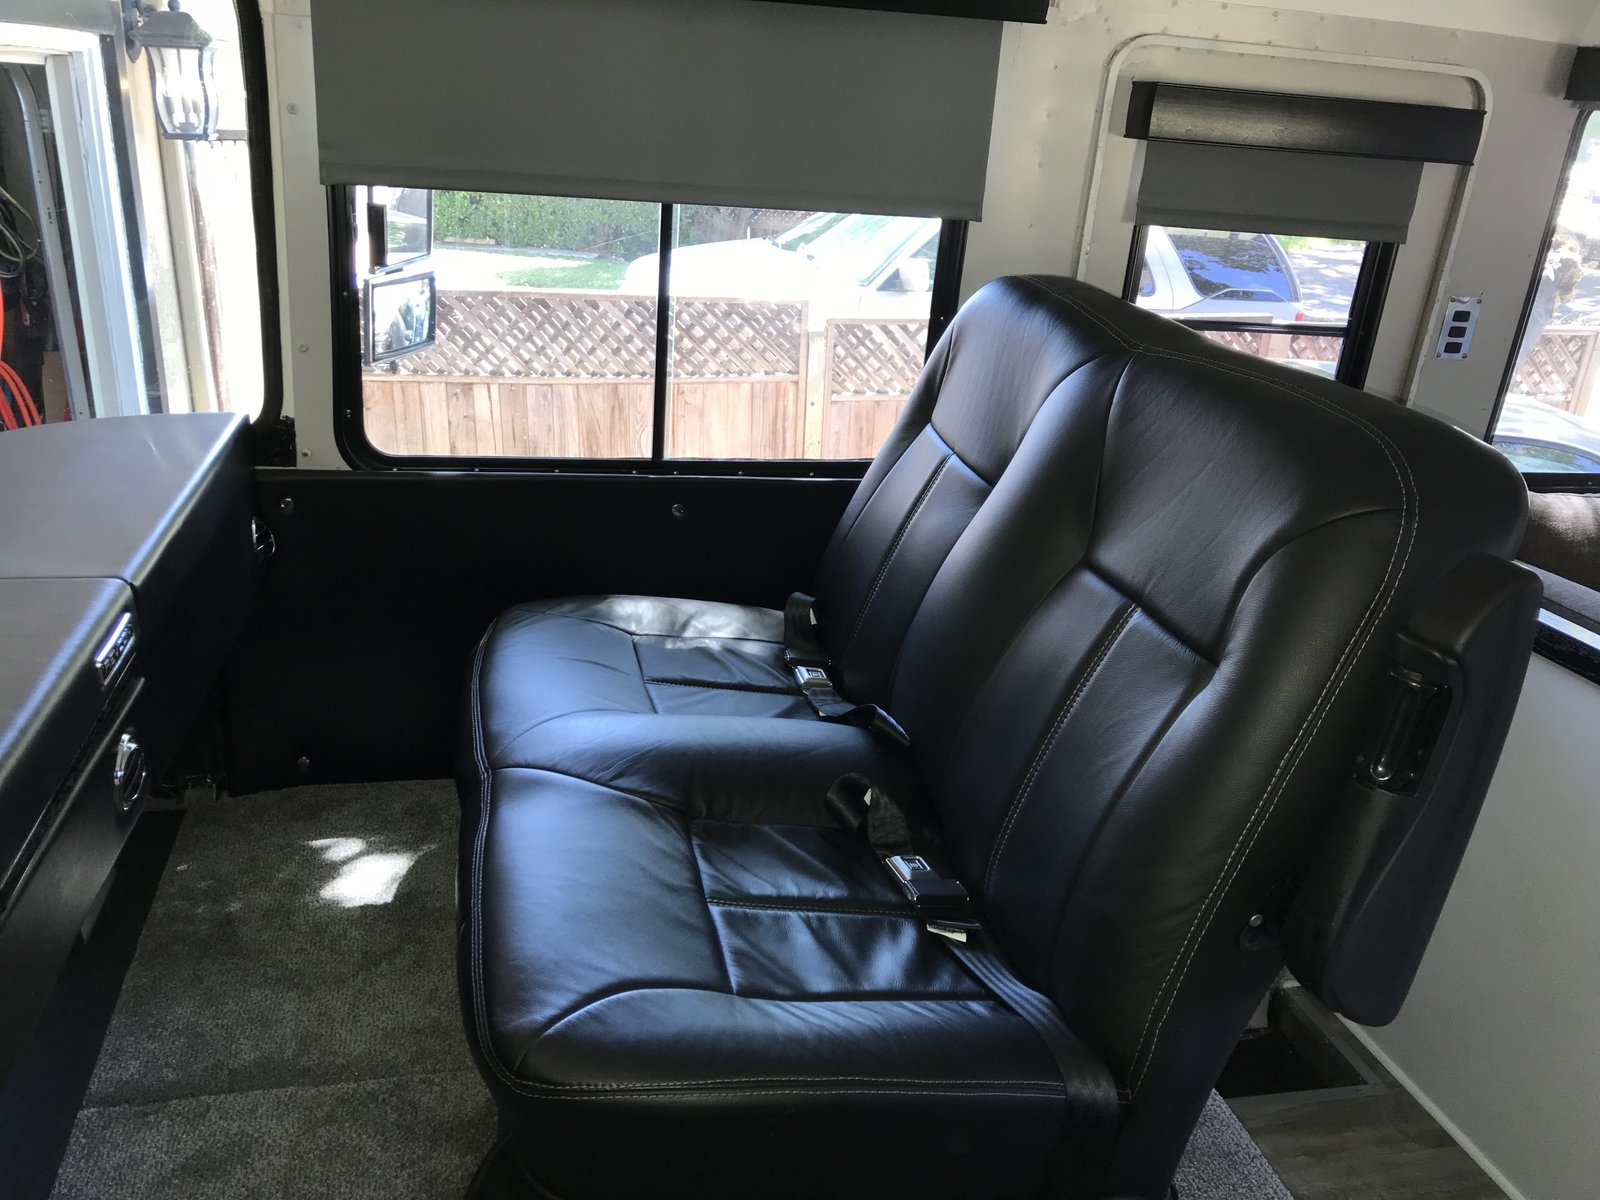 "This is the original two-passenger front seat from RevCon, reupholstered to match the leather driver's seat. Photo 14 of Flatnose Frank: Our Renovated Vintage RevCon Motorhome (""Is that an Airstream?"") modern home"